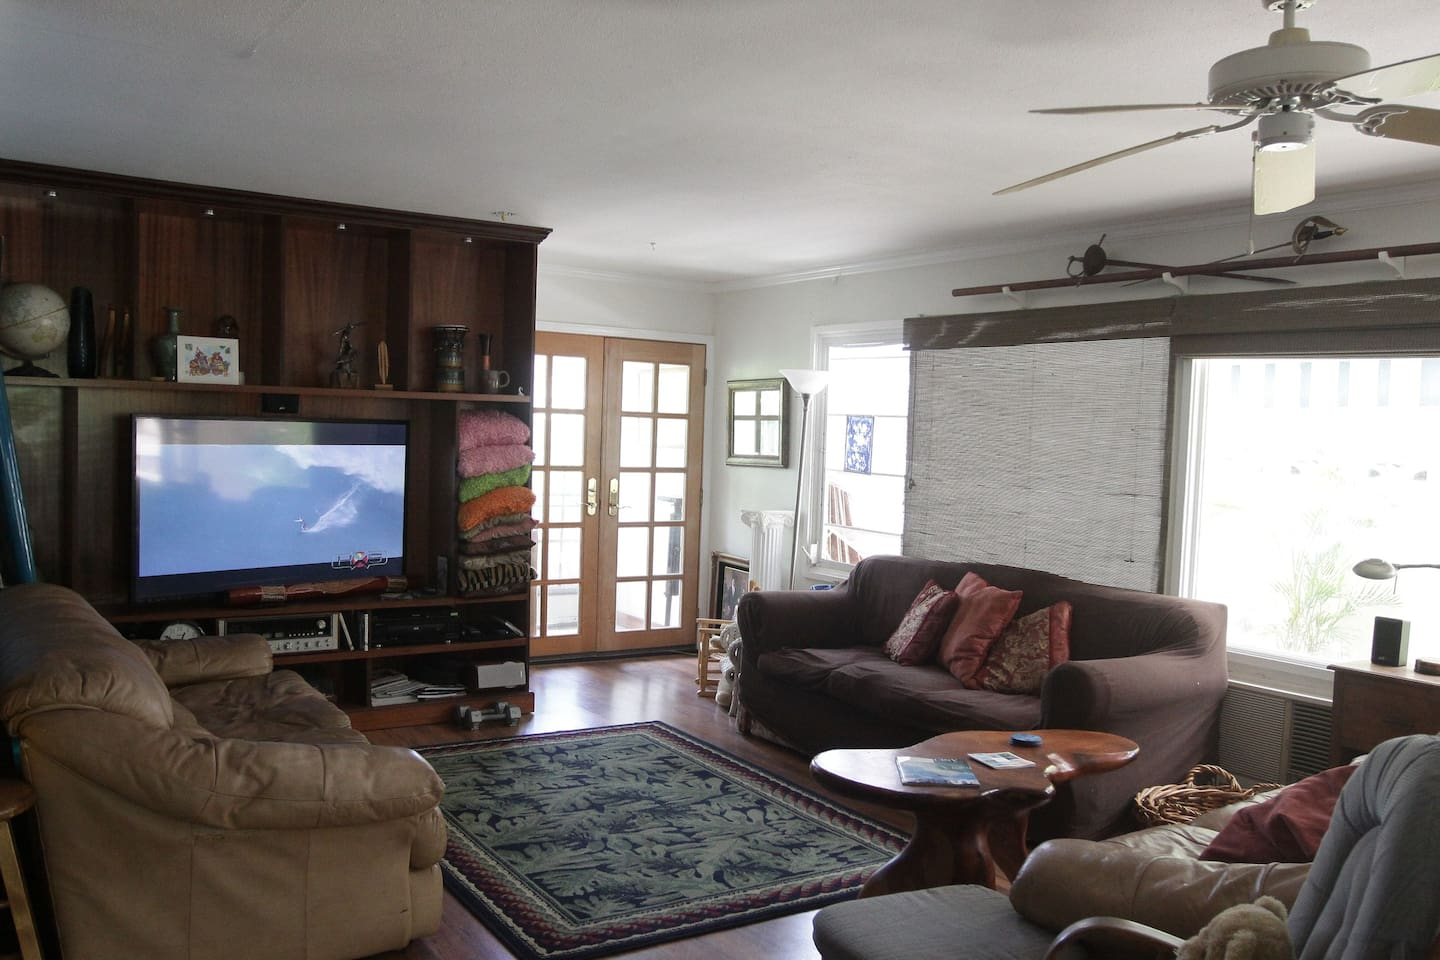 large screen for watching movies